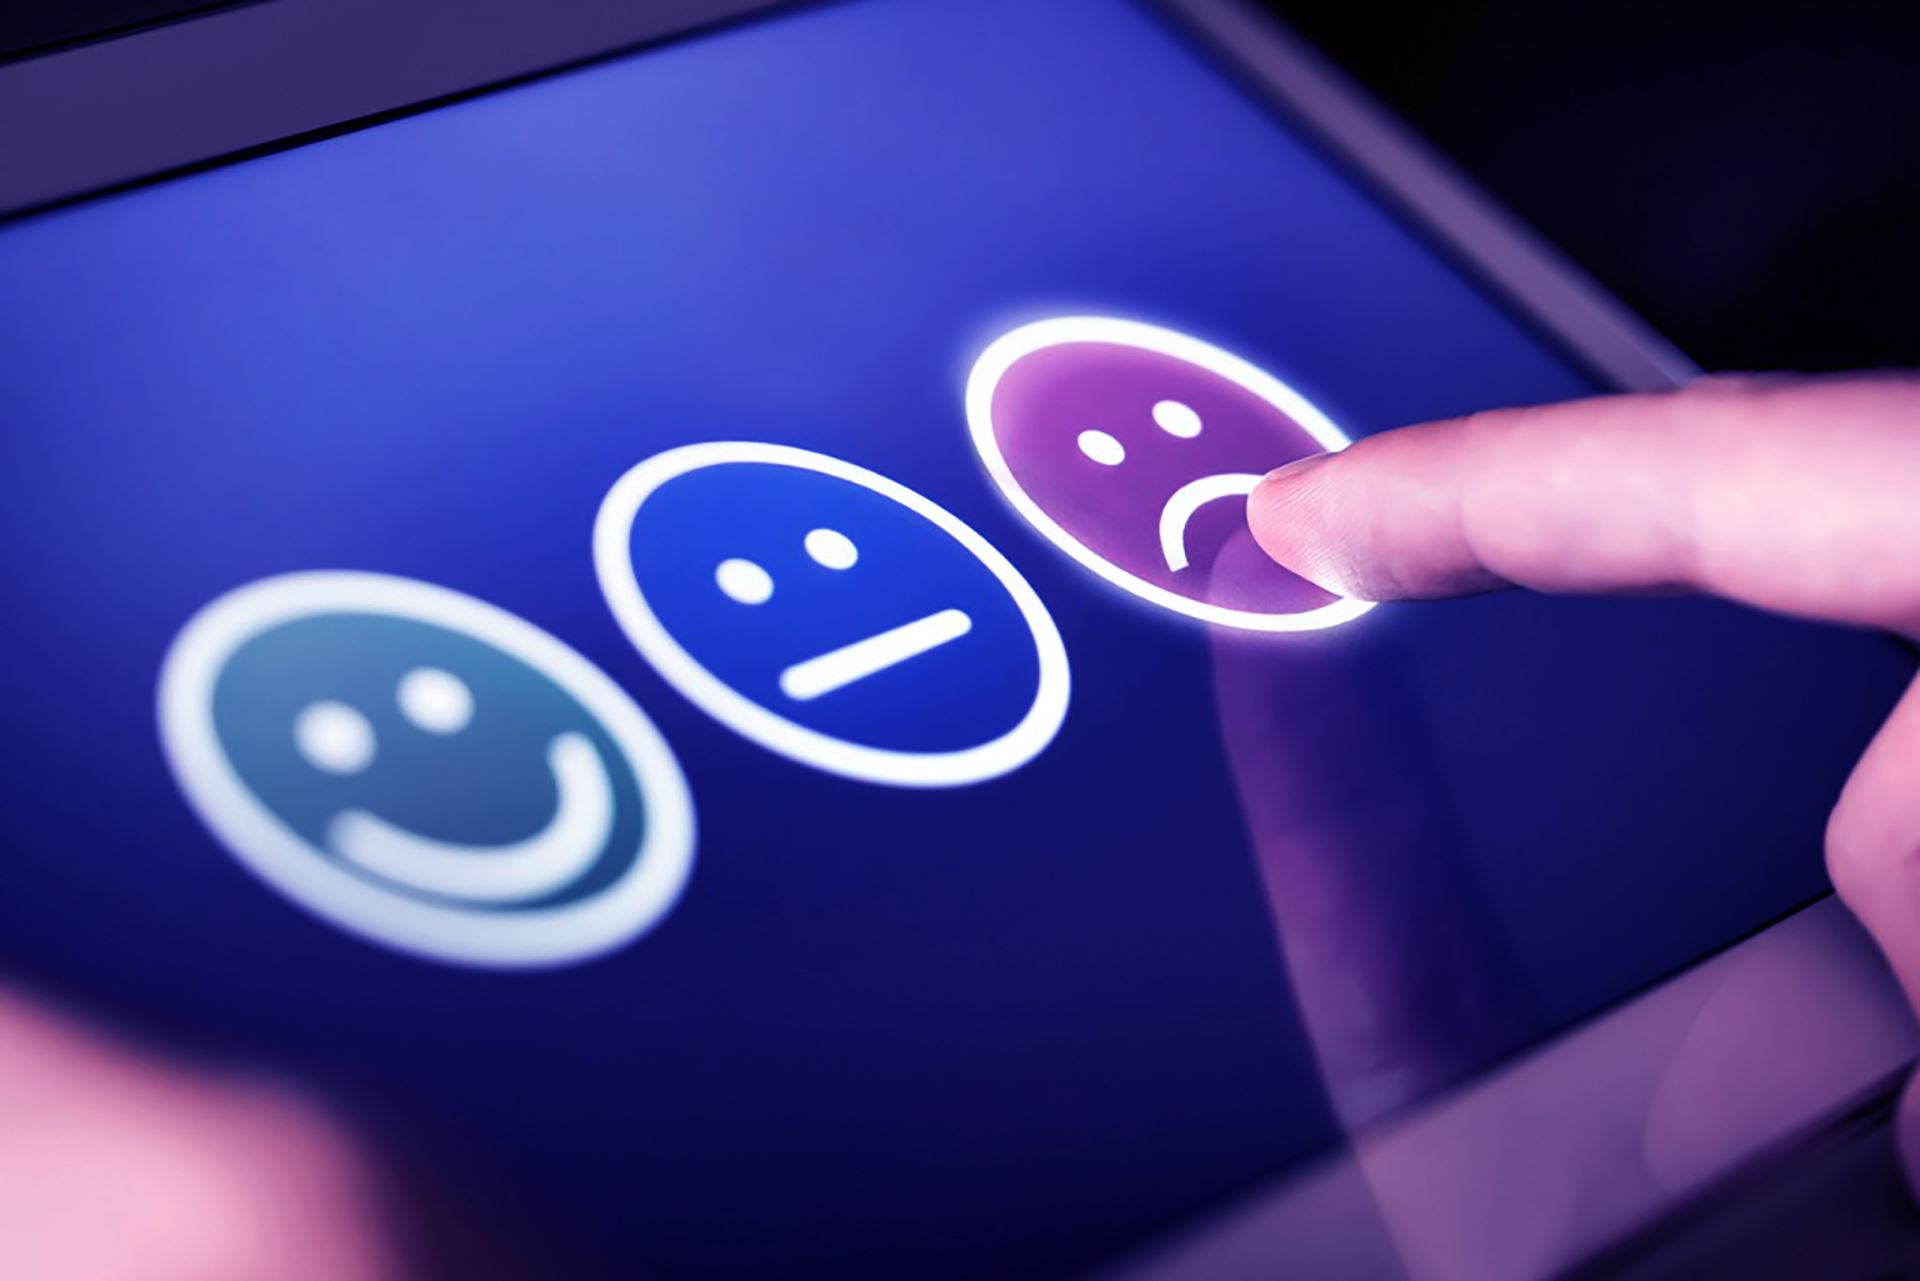 The negative impact of poor customer service